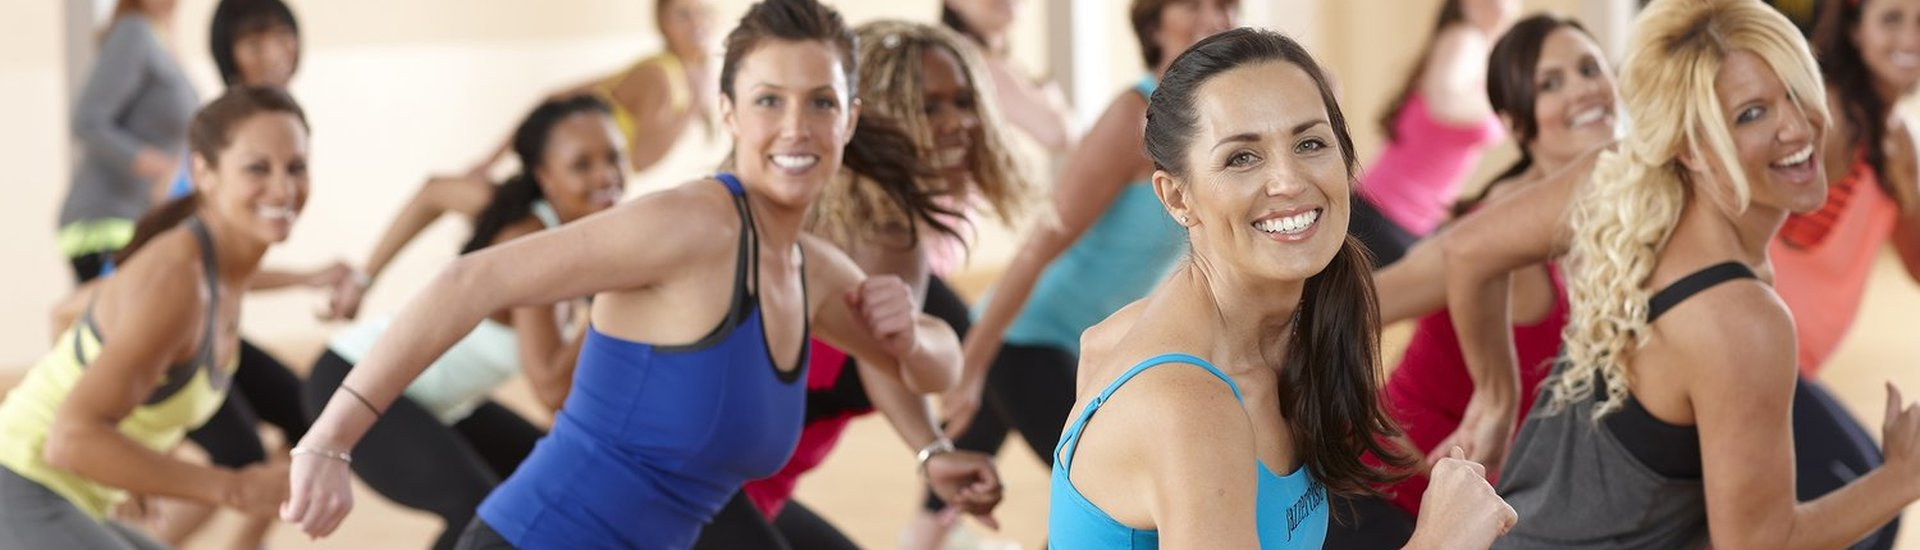 Club Interamnia | Dance fitness